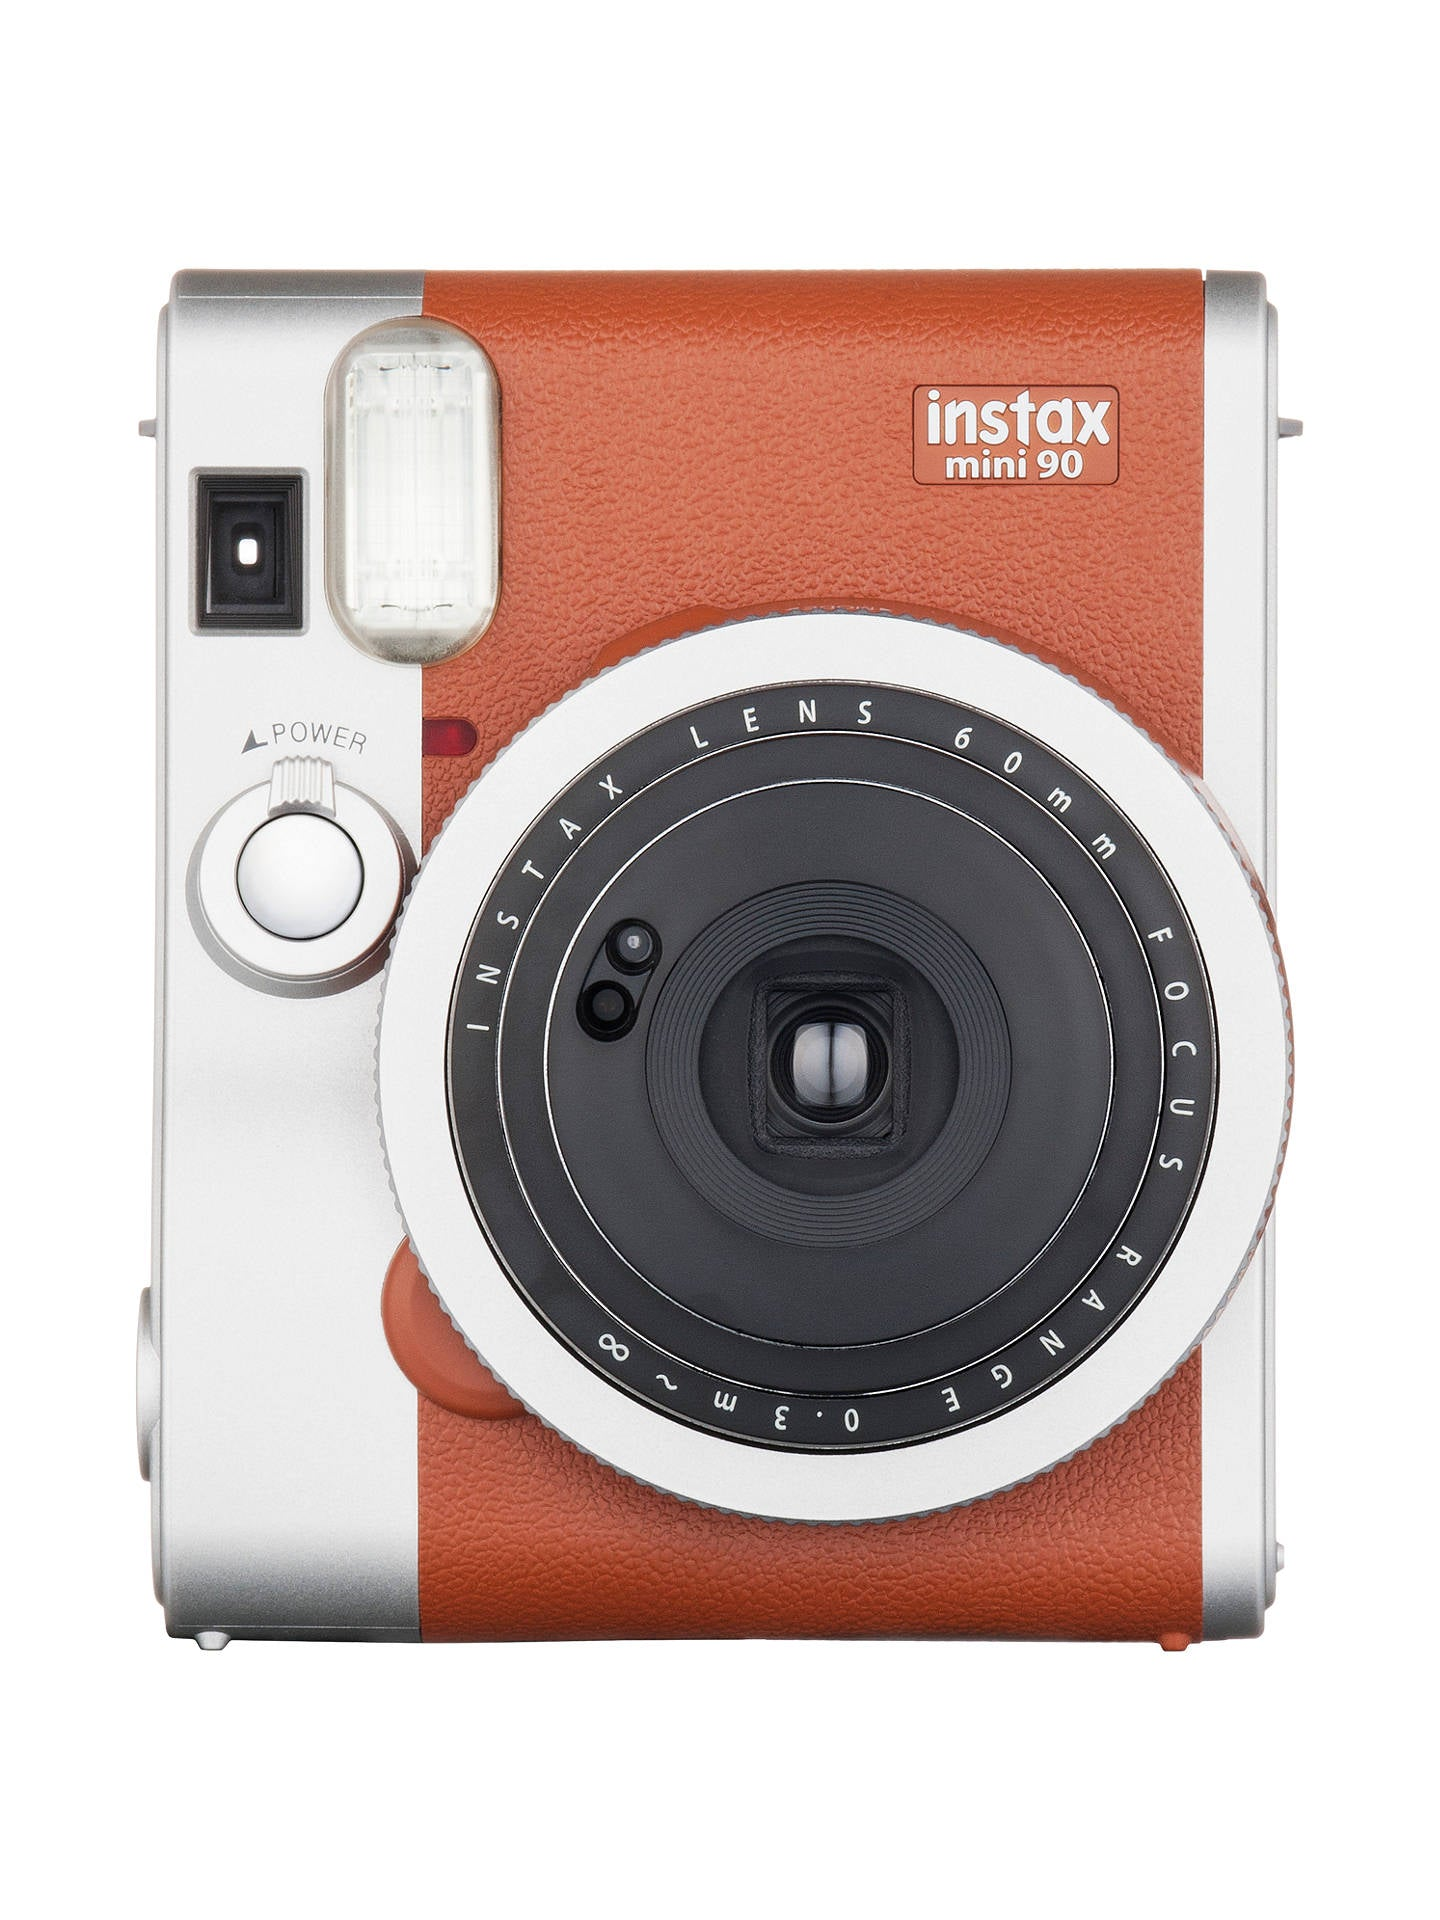 The Classic Snap: Instax